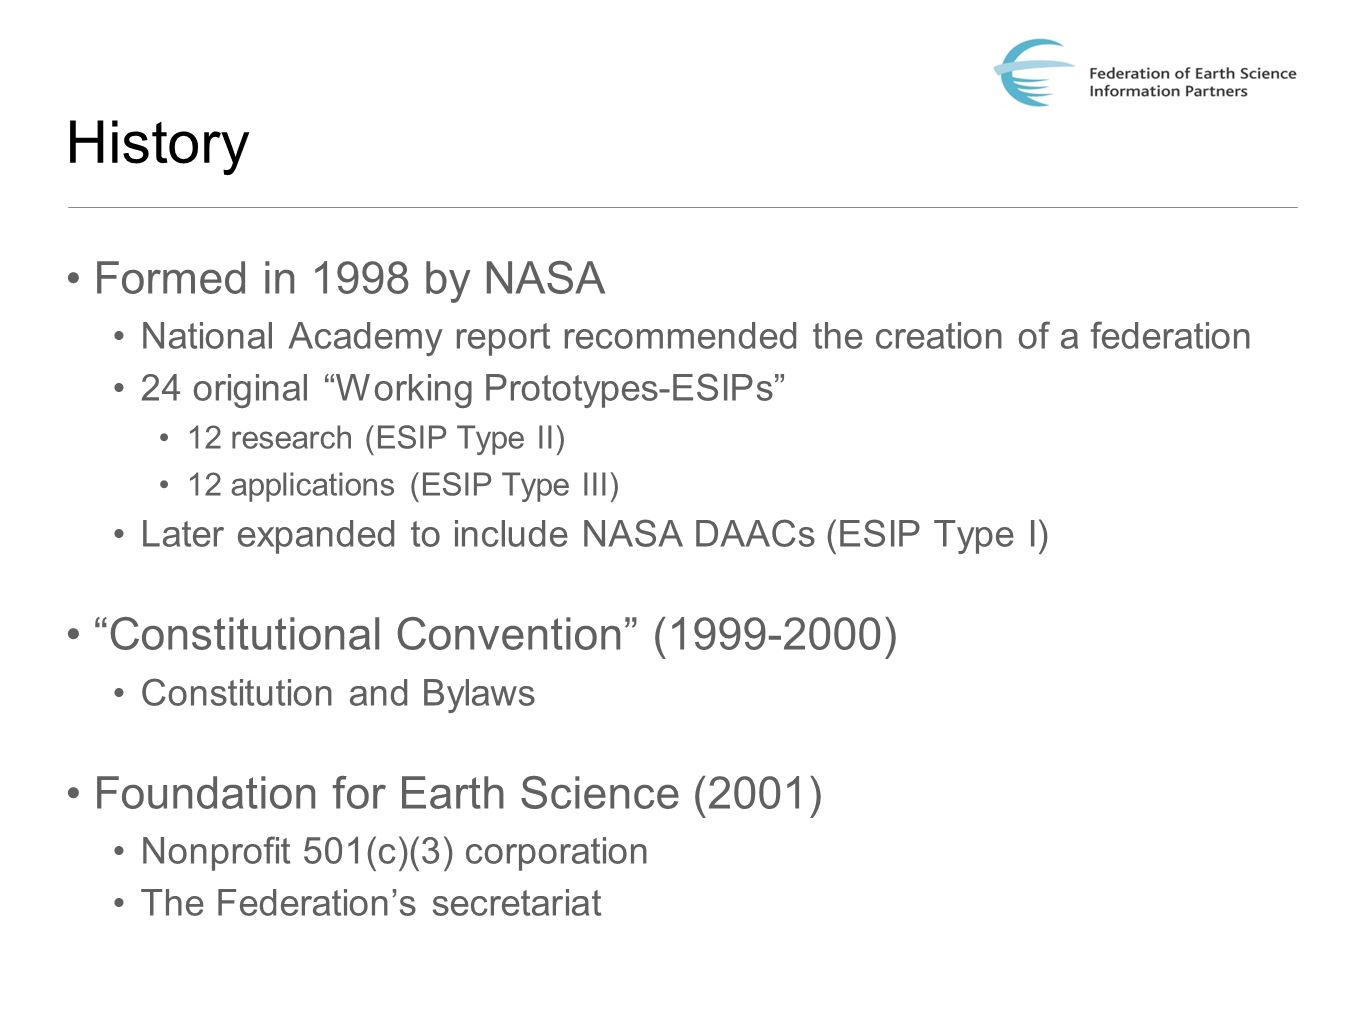 History Formed in 1998 by NASA National Academy report recommended the creation of a federation 24 original Working Prototypes-ESIPs 12 research (ESIP Type II) 12 applications (ESIP Type III) Later expanded to include NASA DAACs (ESIP Type I) Constitutional Convention ( ) Constitution and Bylaws Foundation for Earth Science (2001) Nonprofit 501(c)(3) corporation The Federation's secretariat